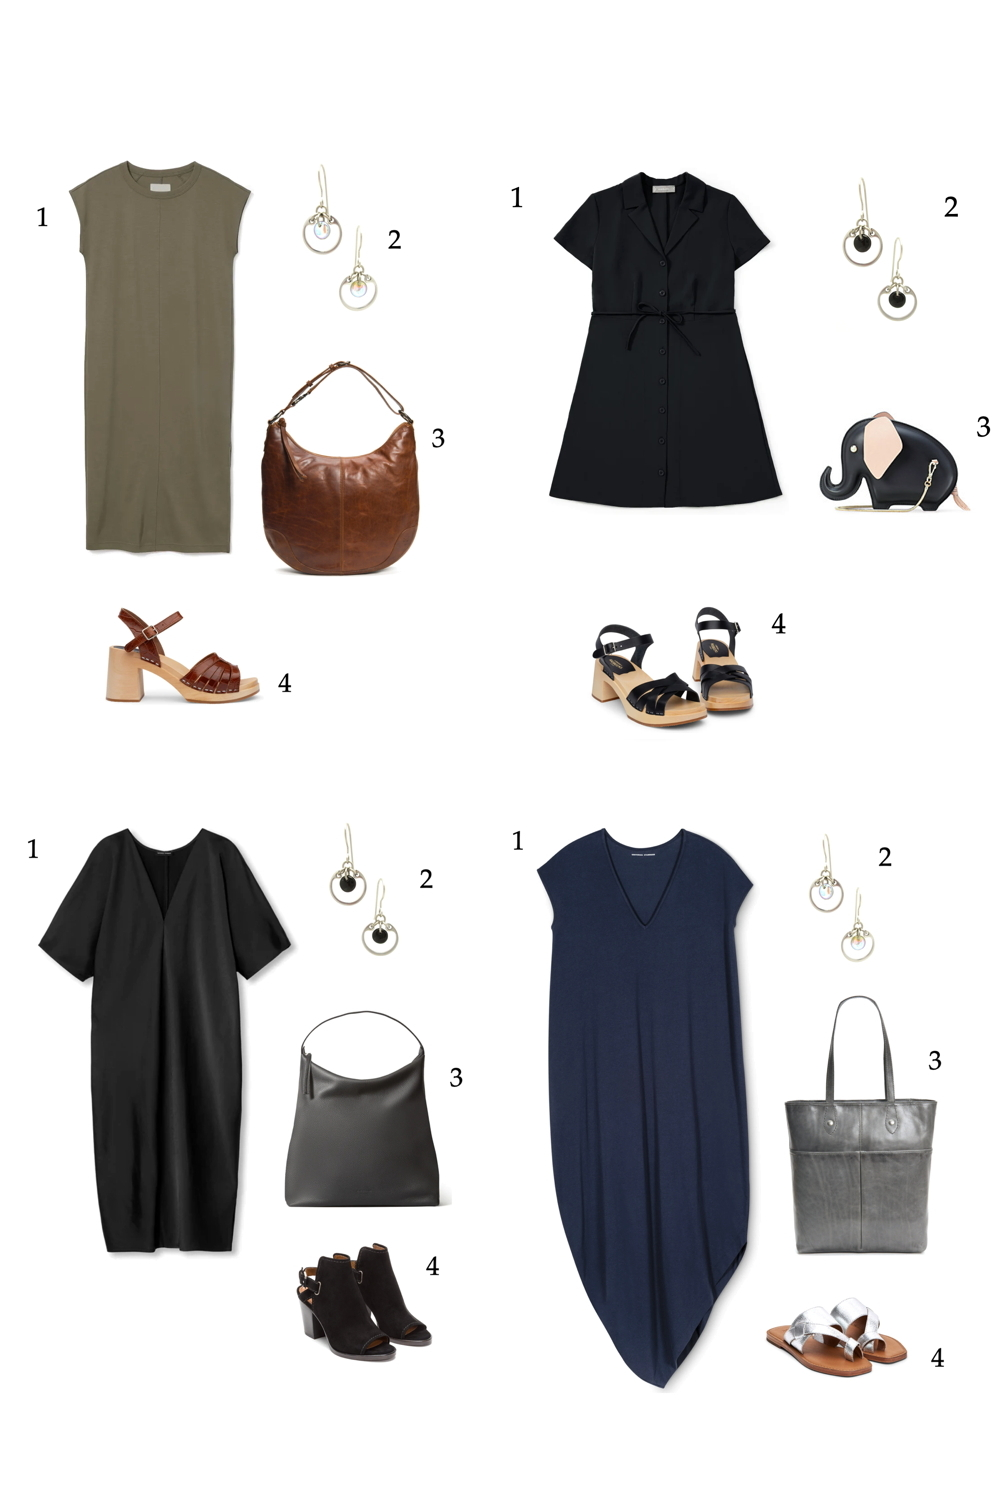 Compiled image of four outfit ideas featuring summer dresses in black, khaki, and navy, with Wraptillion's Small Circle Earrings and other accessories.